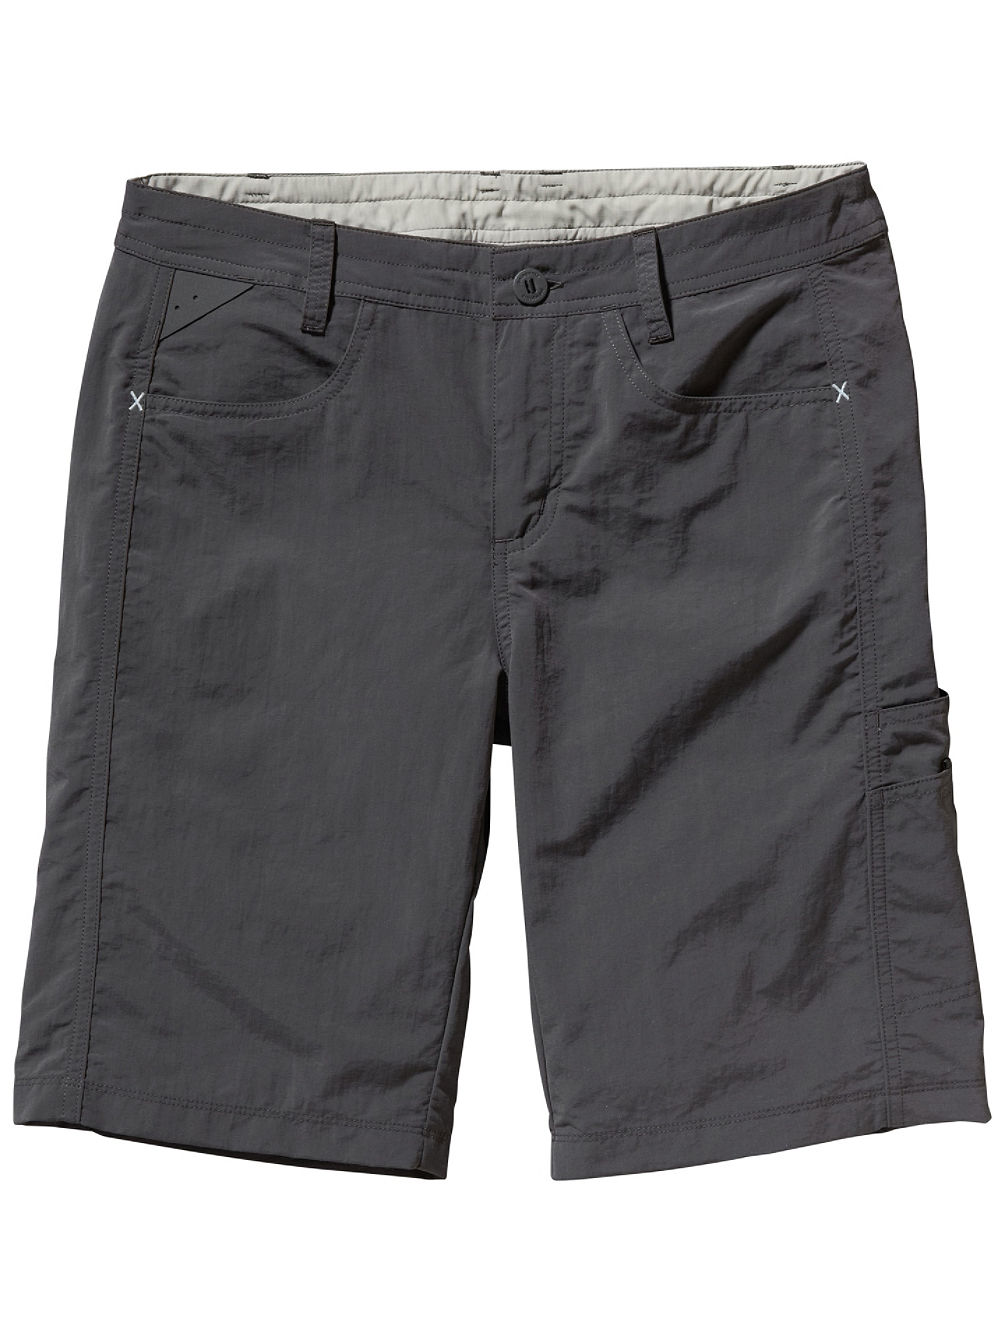 Away From Home Shorts